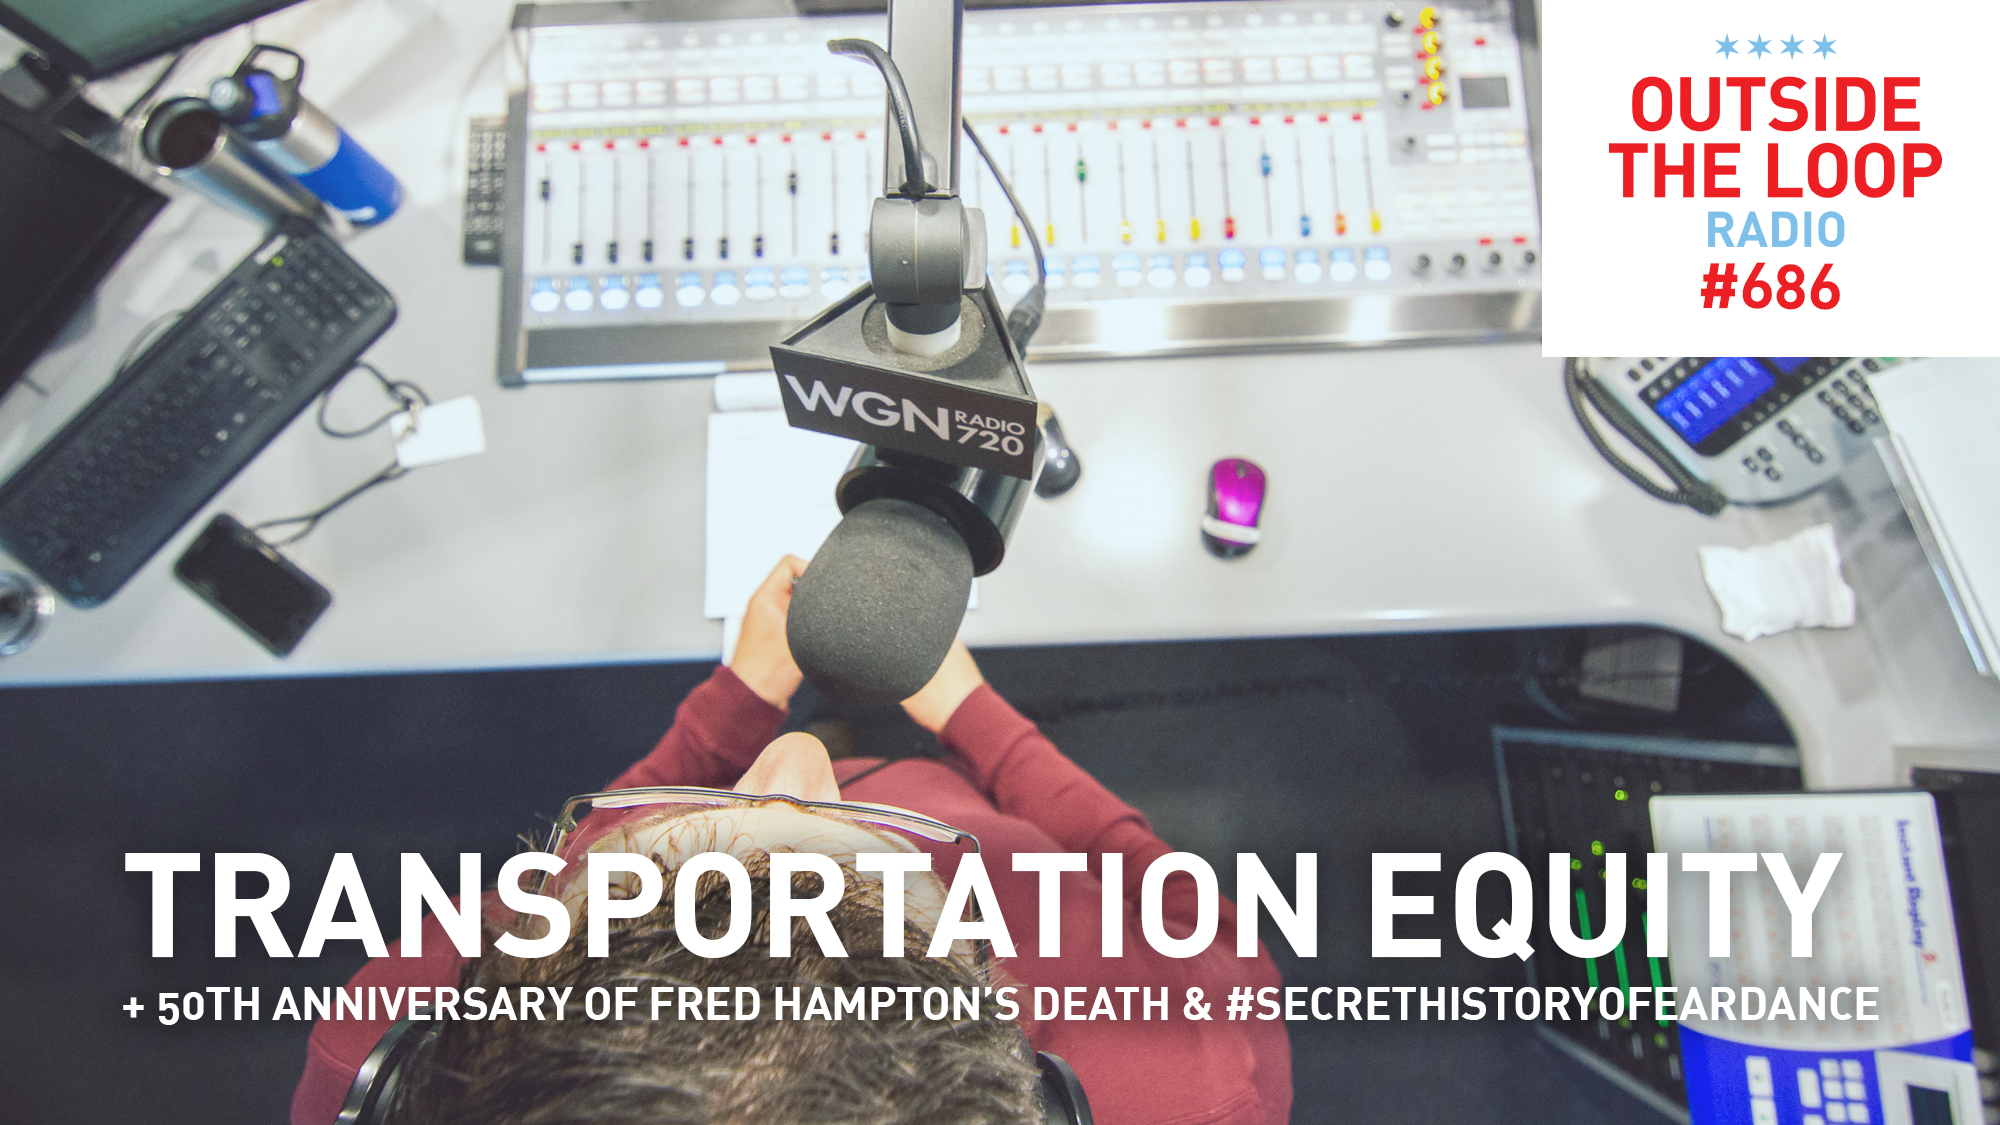 Mike Stephen discusses the significance of the 50th anniversary of the murder of Fred Hampton and Mark Clark.